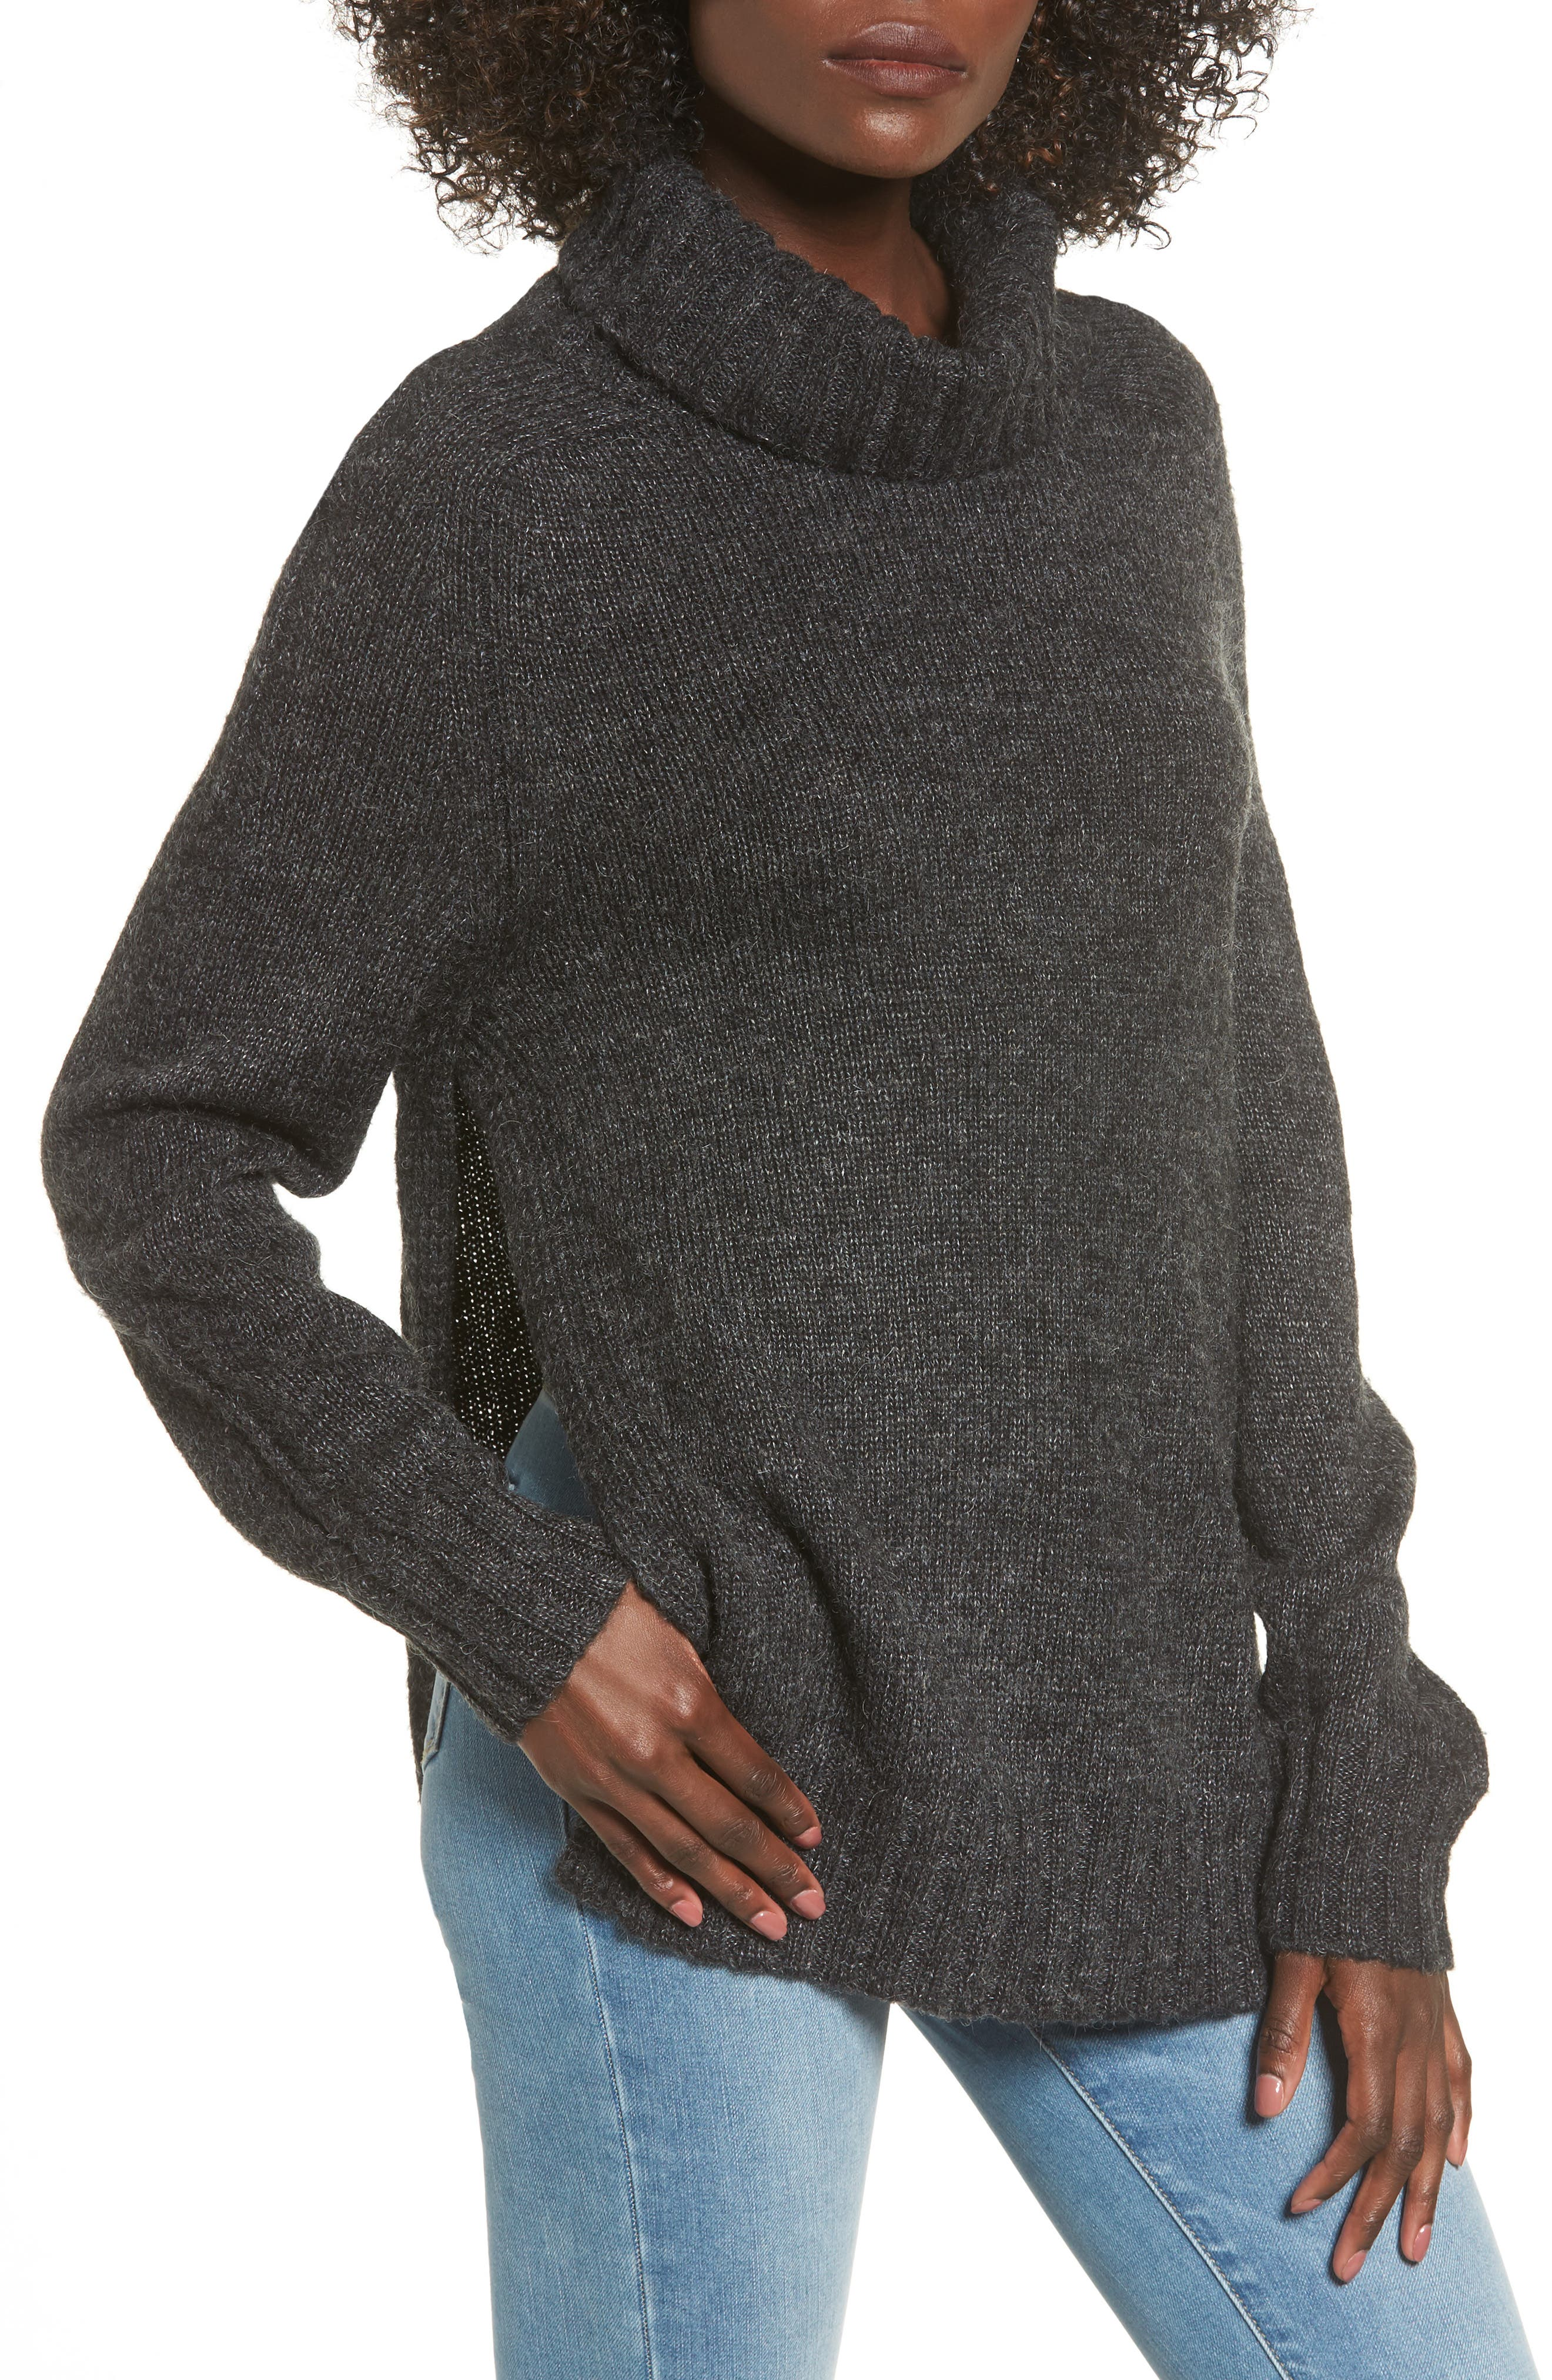 Alternate Image 1 Selected - ASTR the Label Stacy Turtleneck Sweater